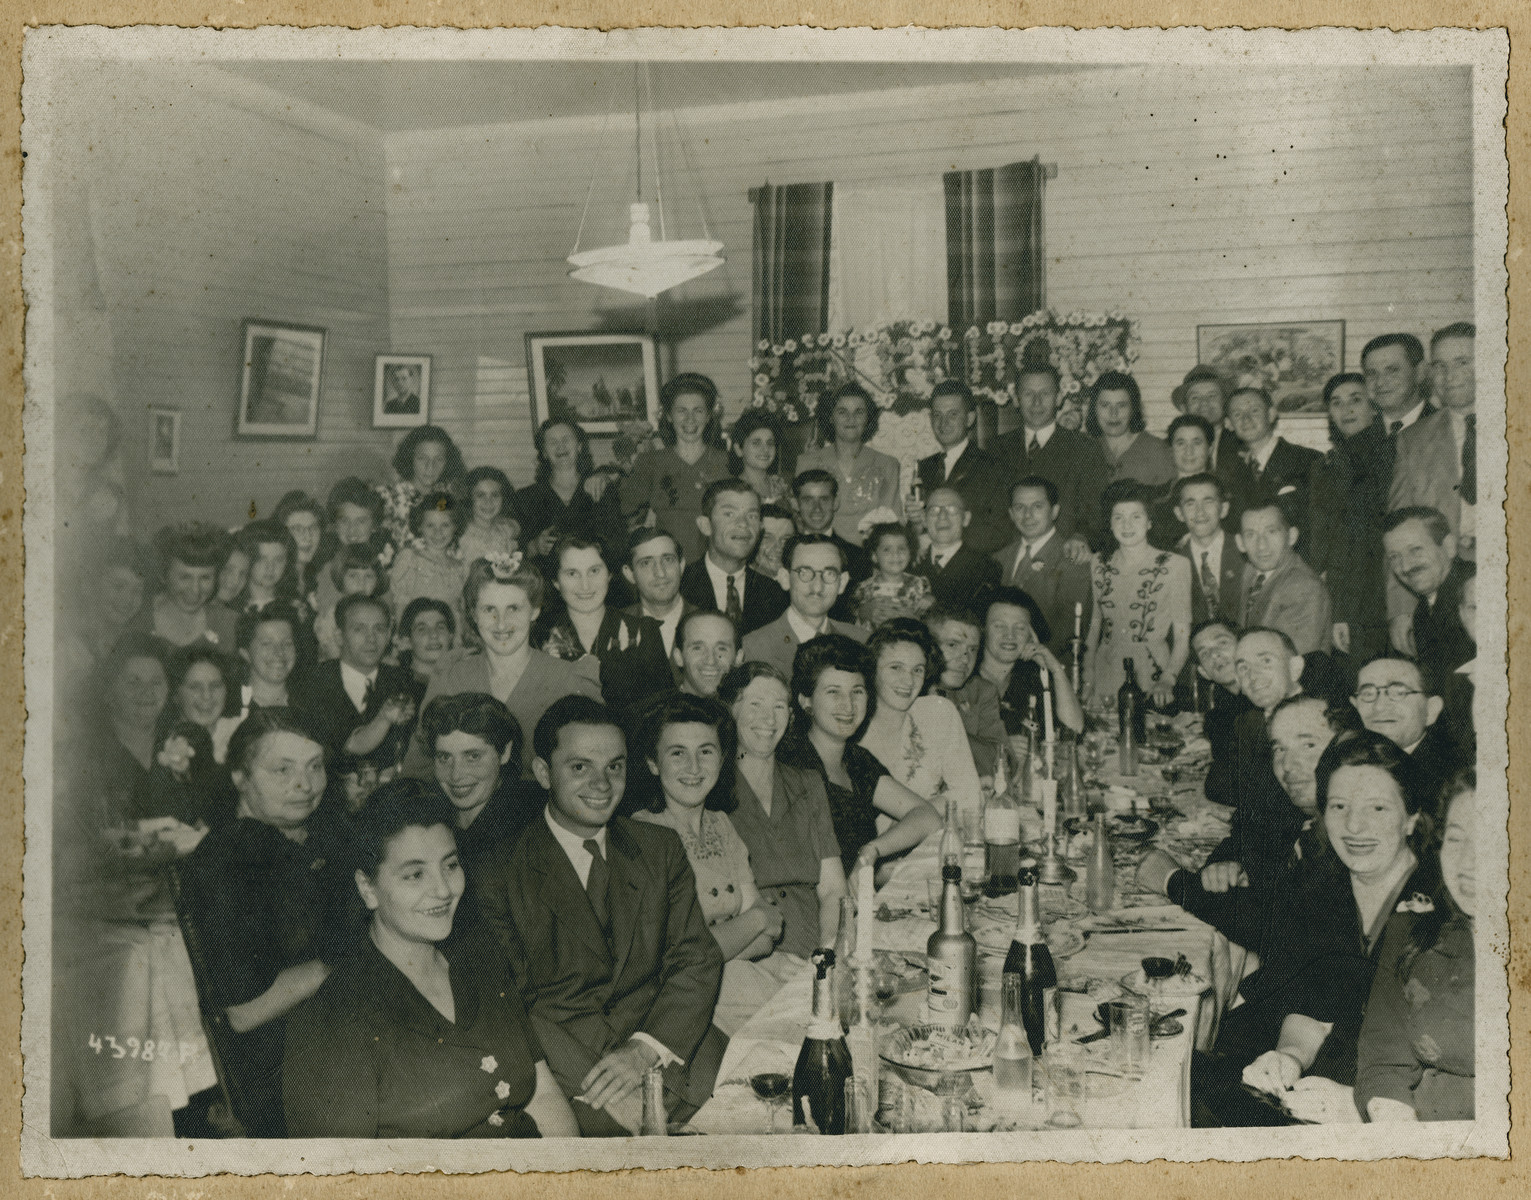 Social gathering of recent Jewish immigrants to Costa Rica.